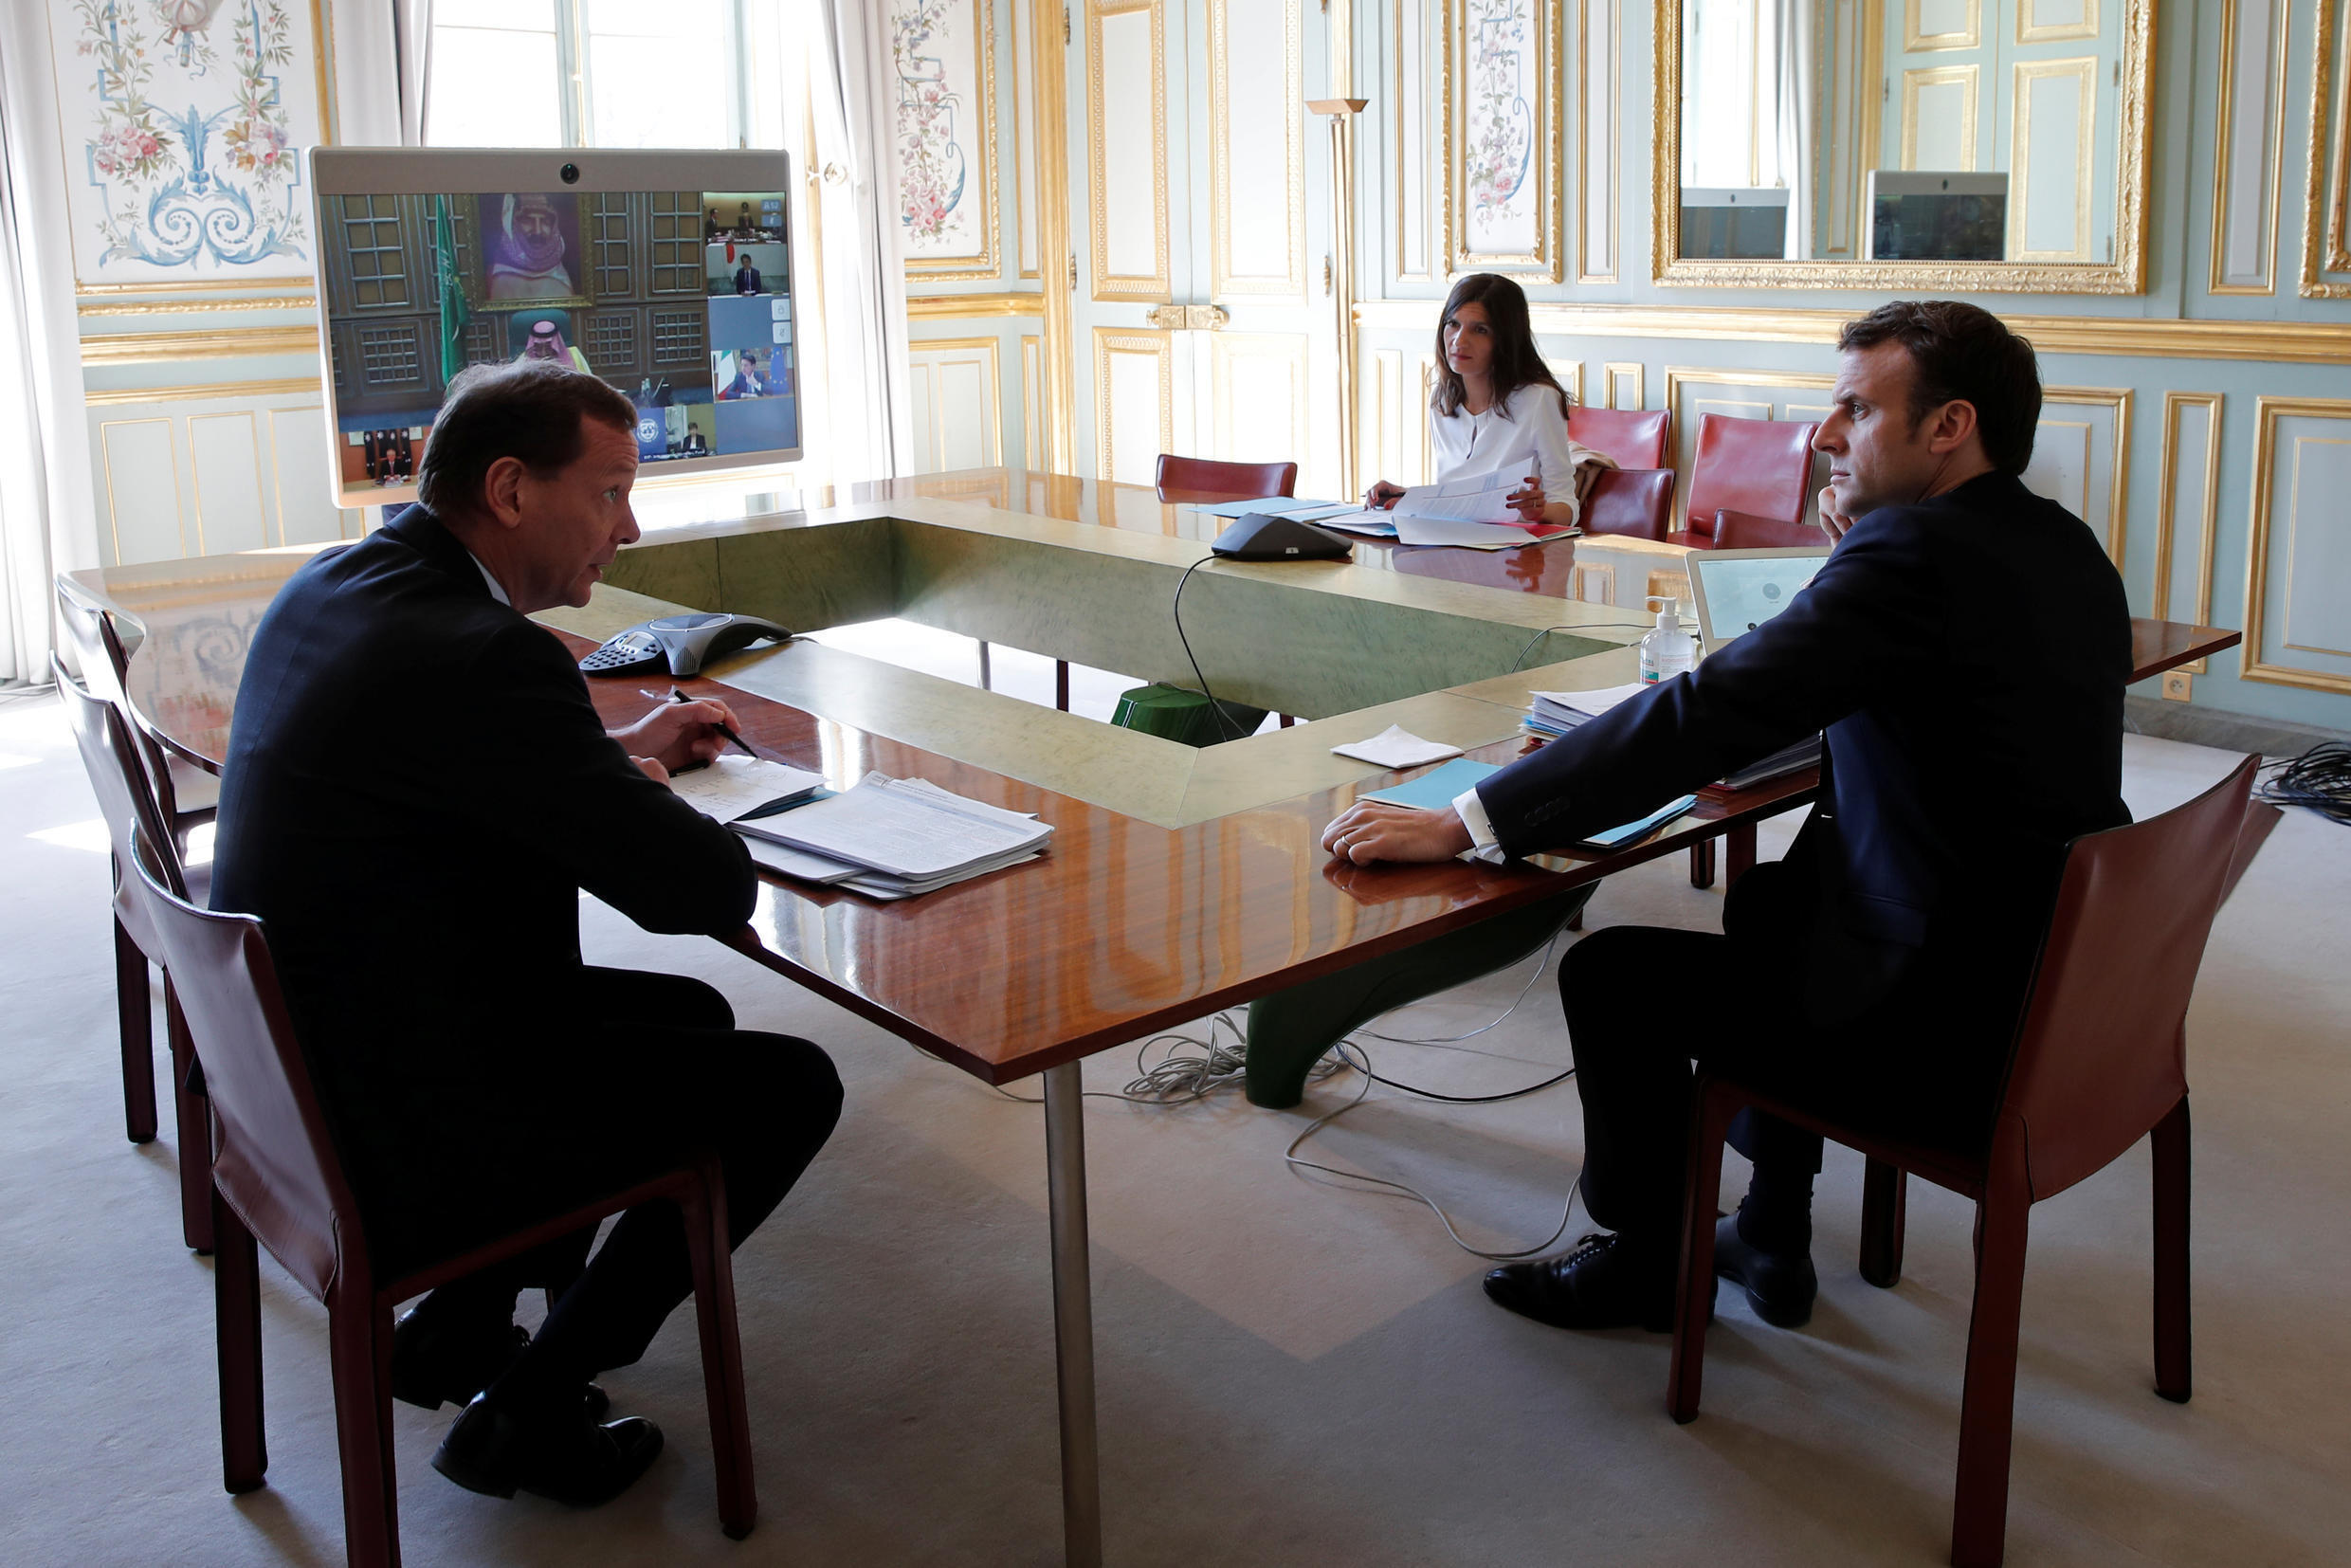 French President Emmanuel Macron during a G20 videoconference on the Covid-19 pandemic